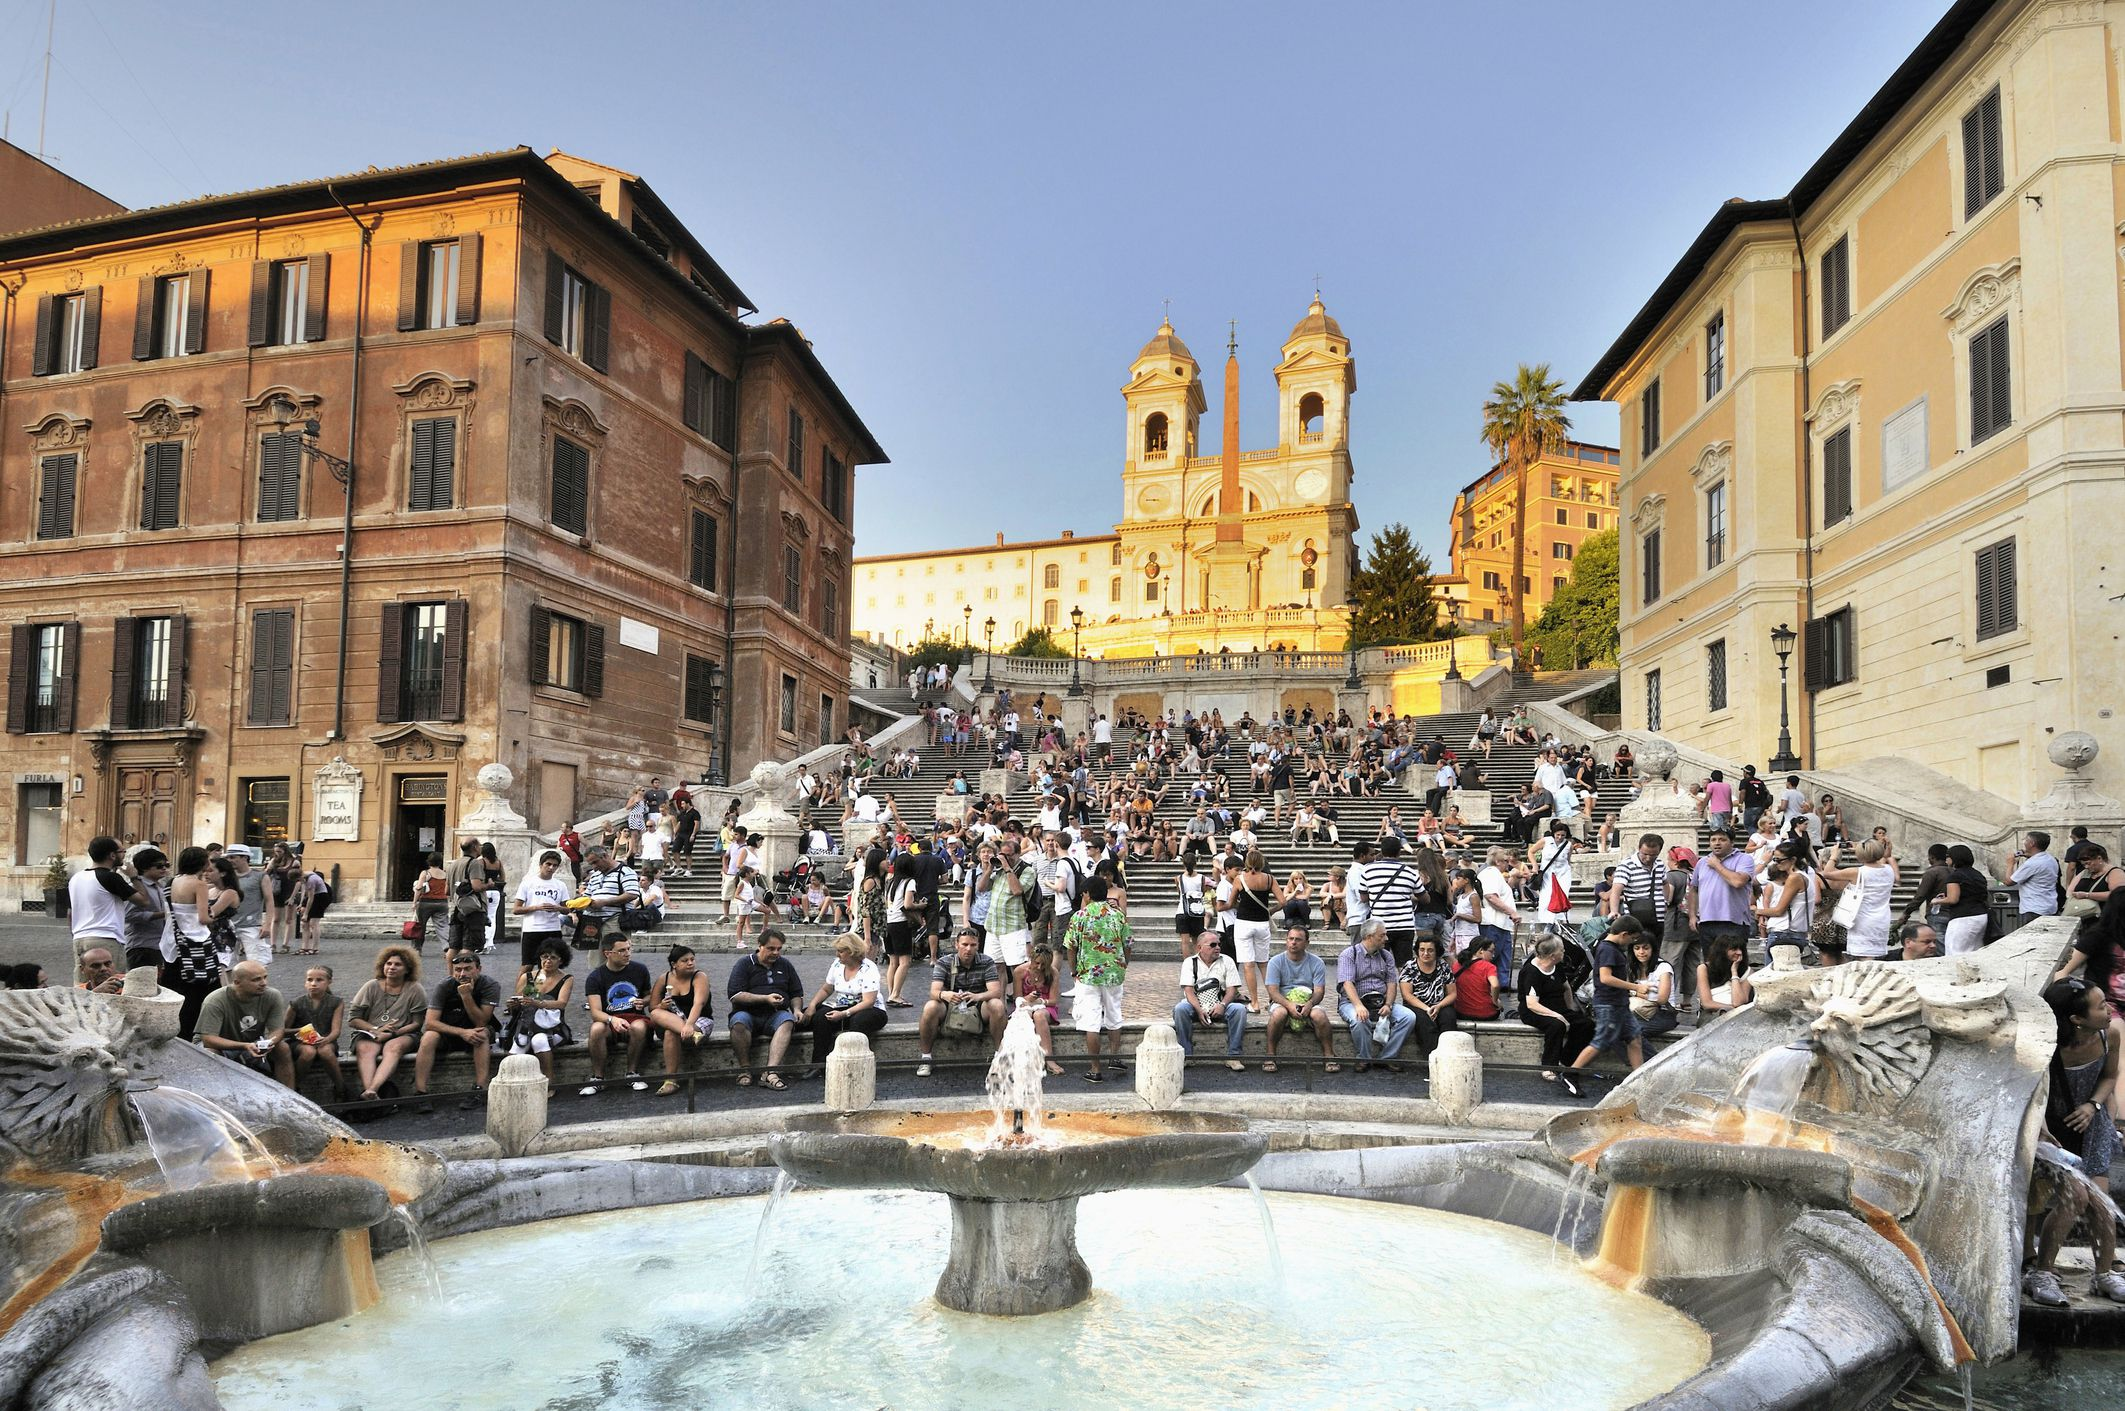 6 Things to See and Do Near the Spanish Steps in Rome